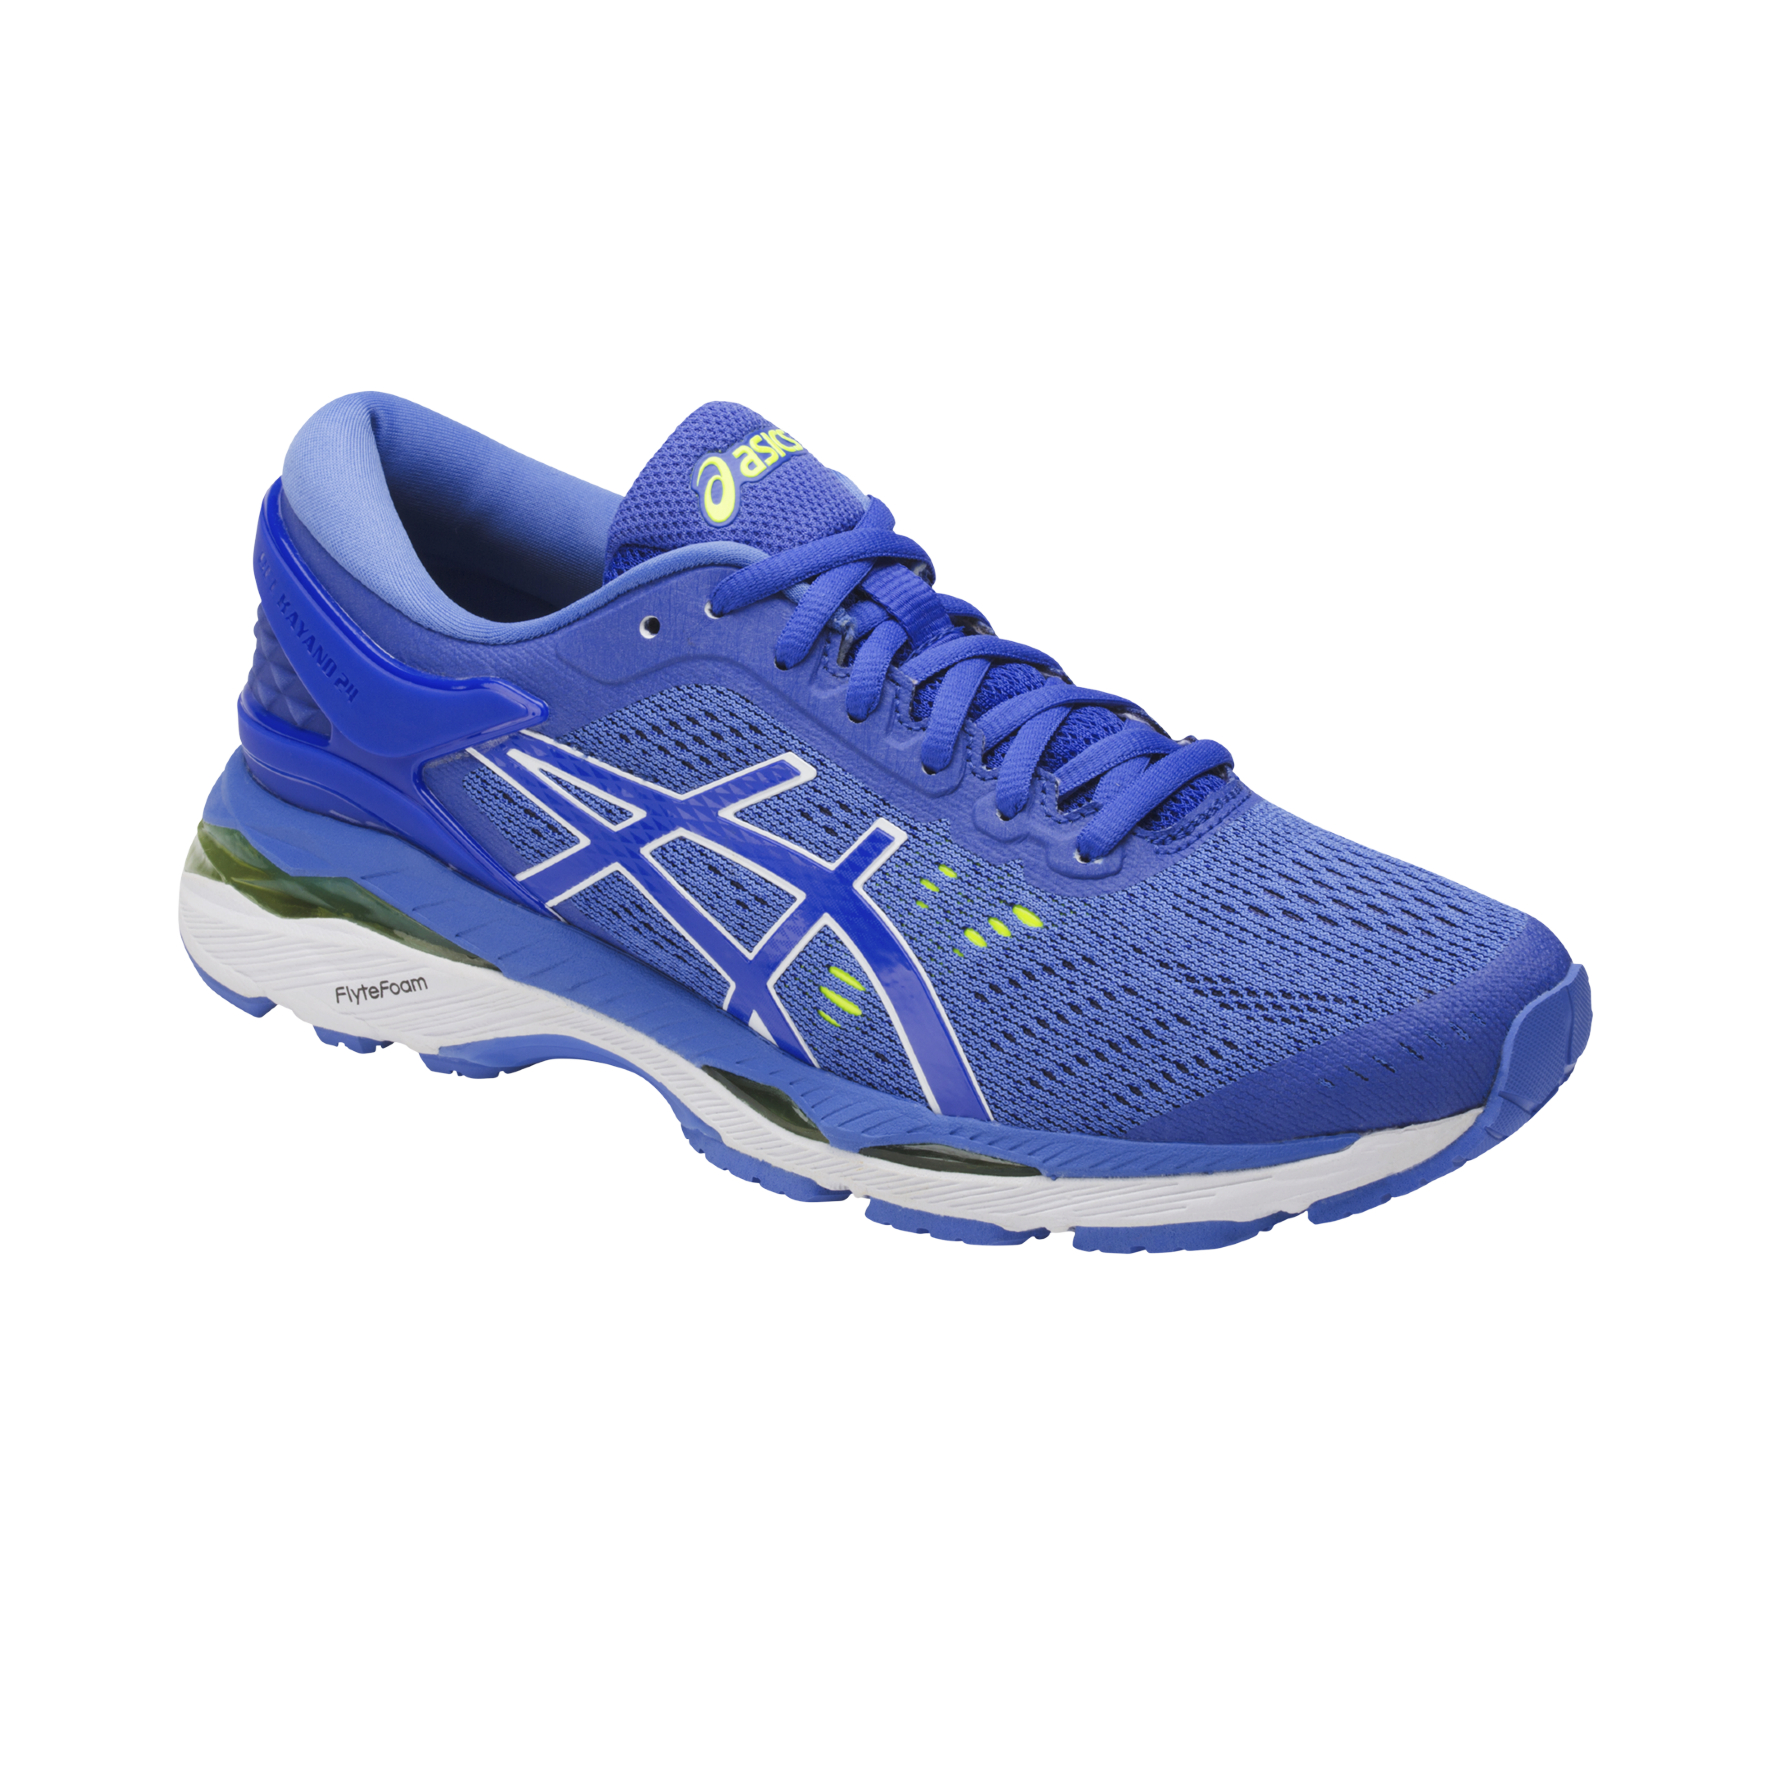 ASICS GEL-Kayano 24 Damen